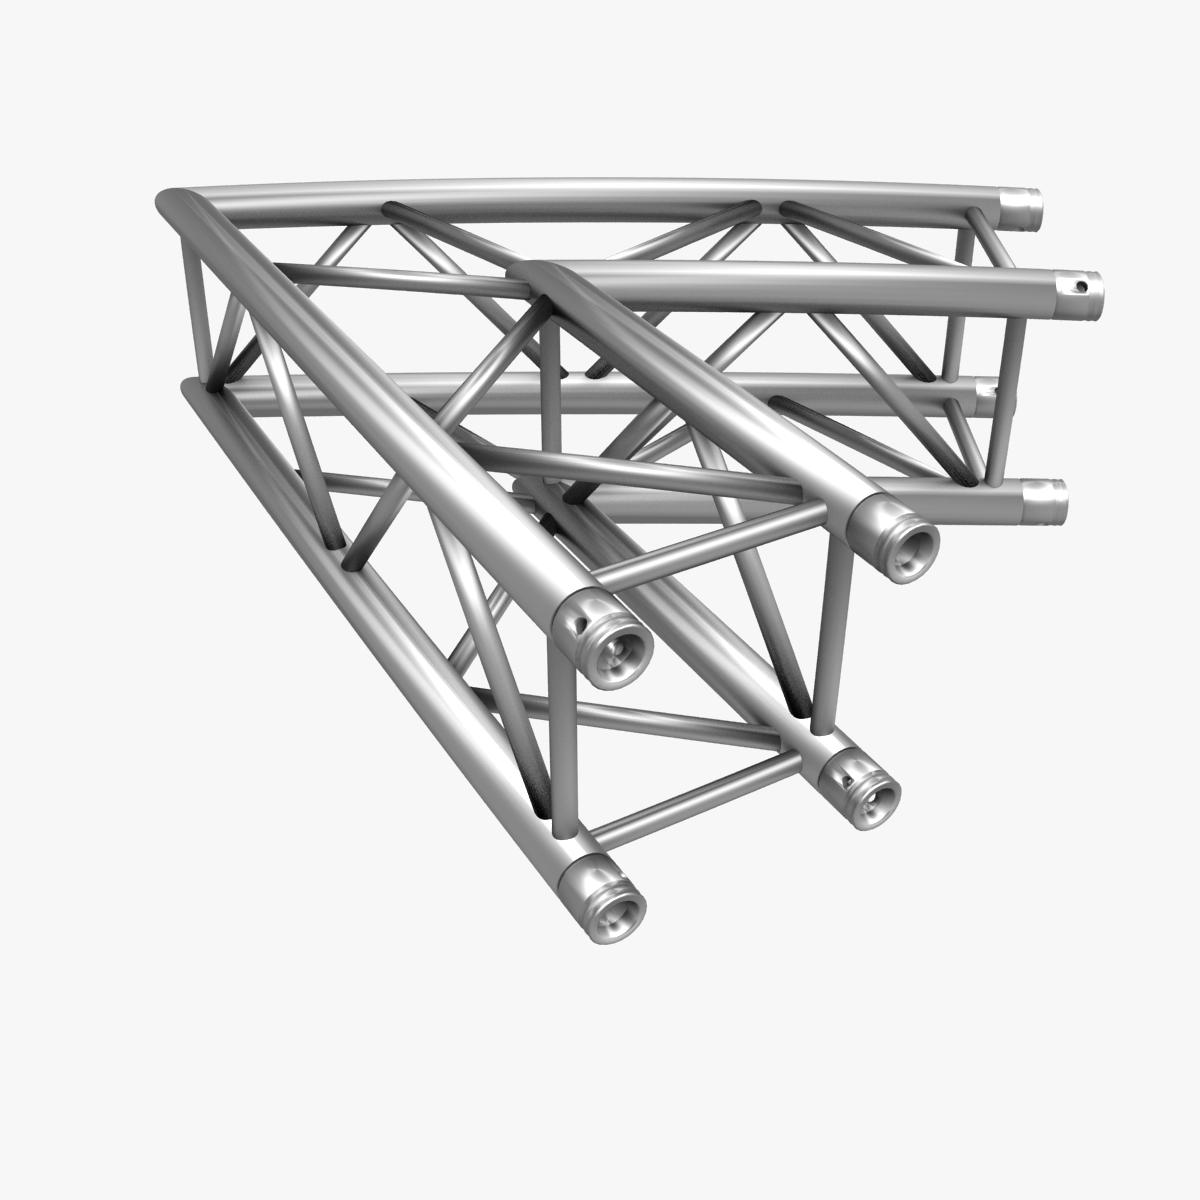 square truss standard (collection 24 modular) 3d model 3ds max dxf fbx c4d dae  texture obj 216356